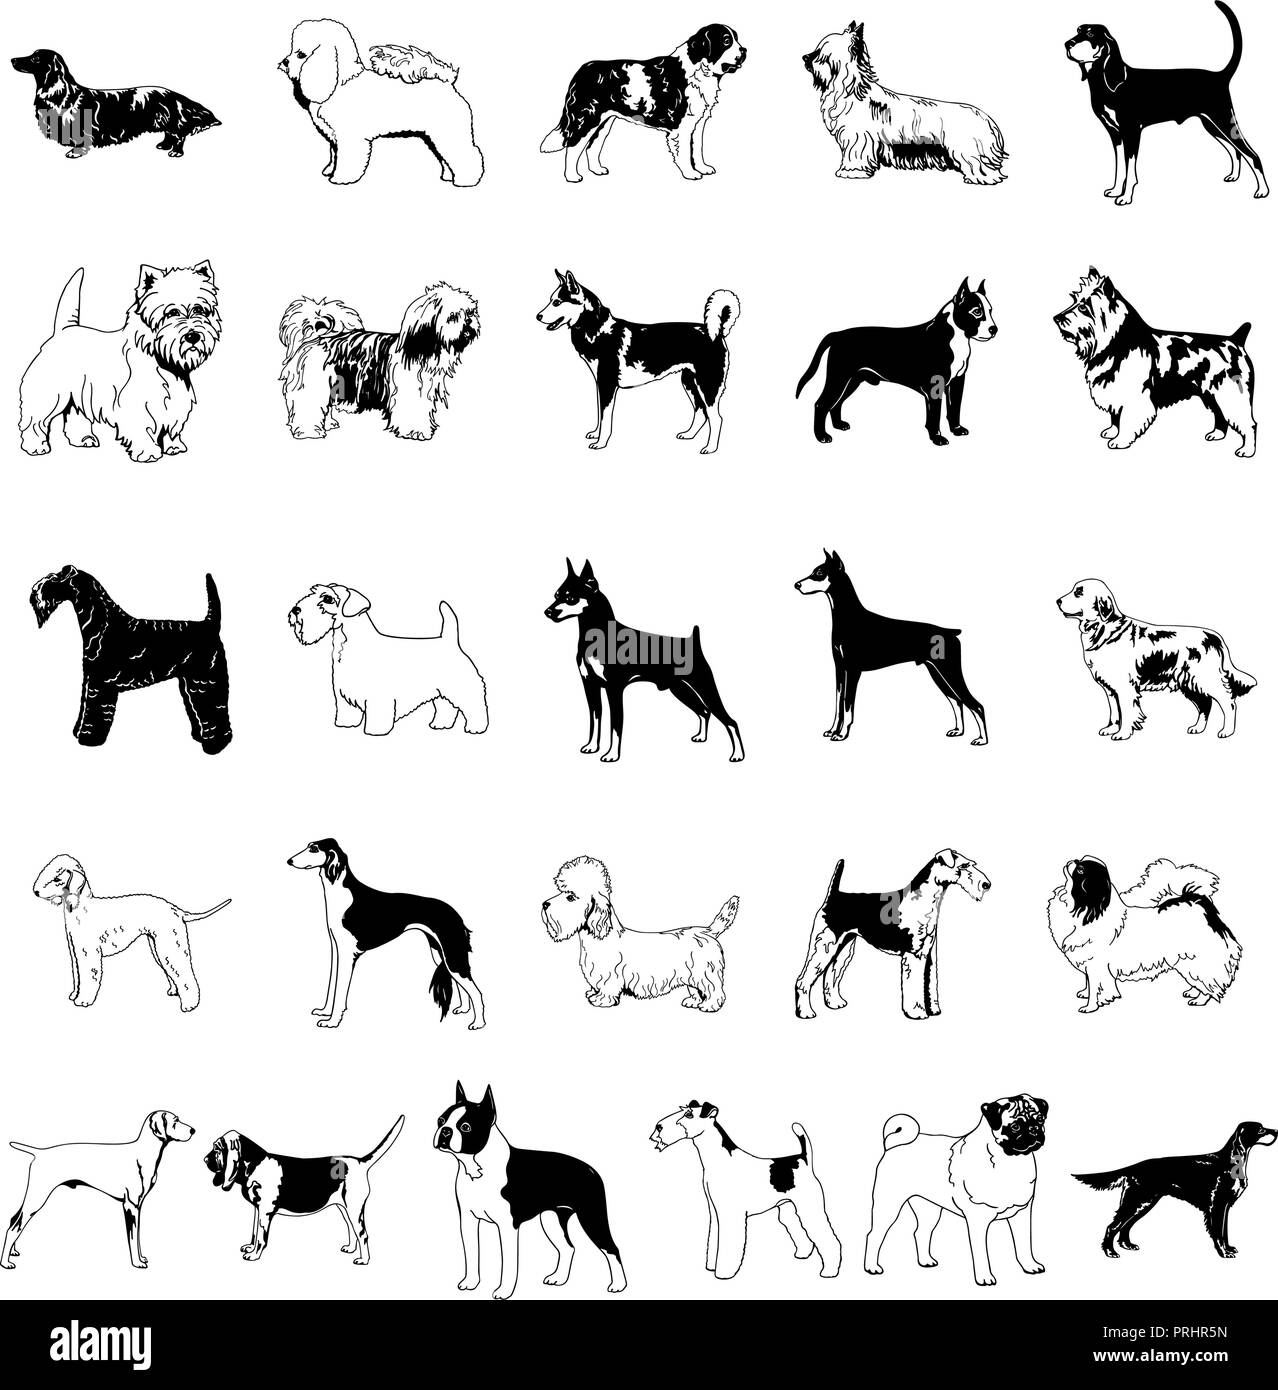 Clipart Chien Dessin Anime Vector Illustration Collection Image Vectorielle Stock Alamy